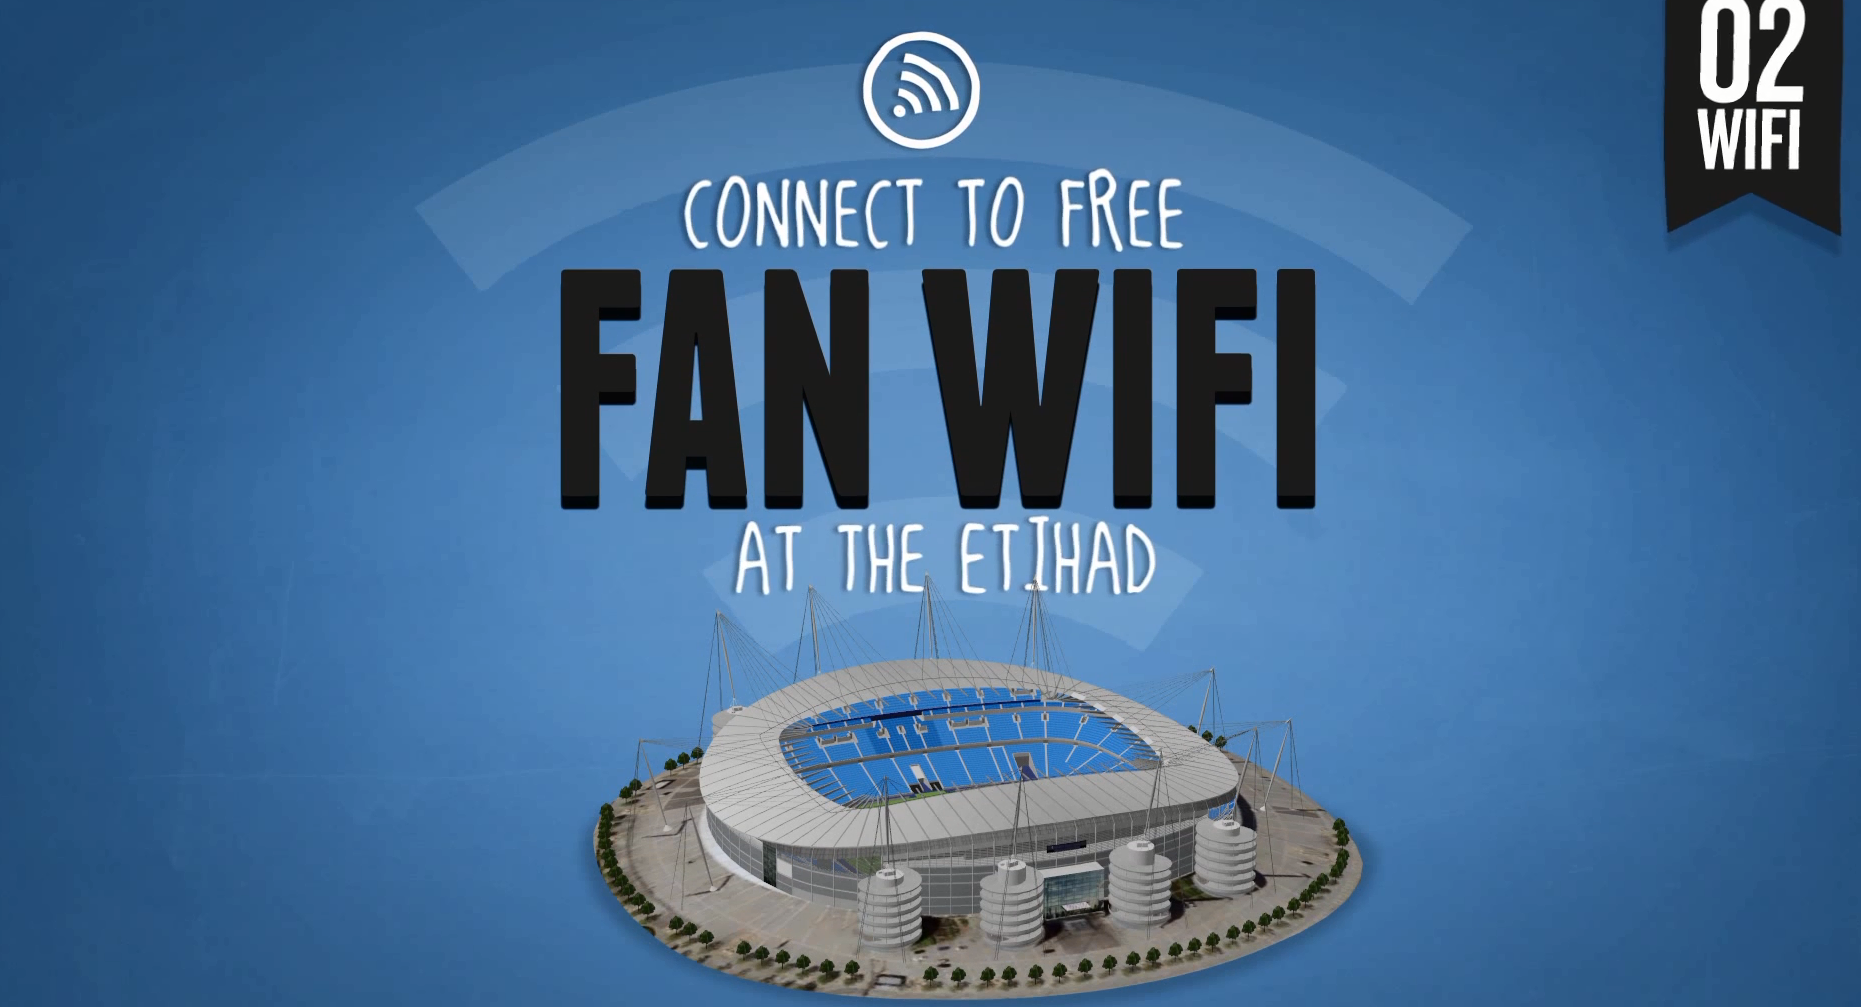 Manchester City become first Premier League club to roll-out full stadium Wi-Fi